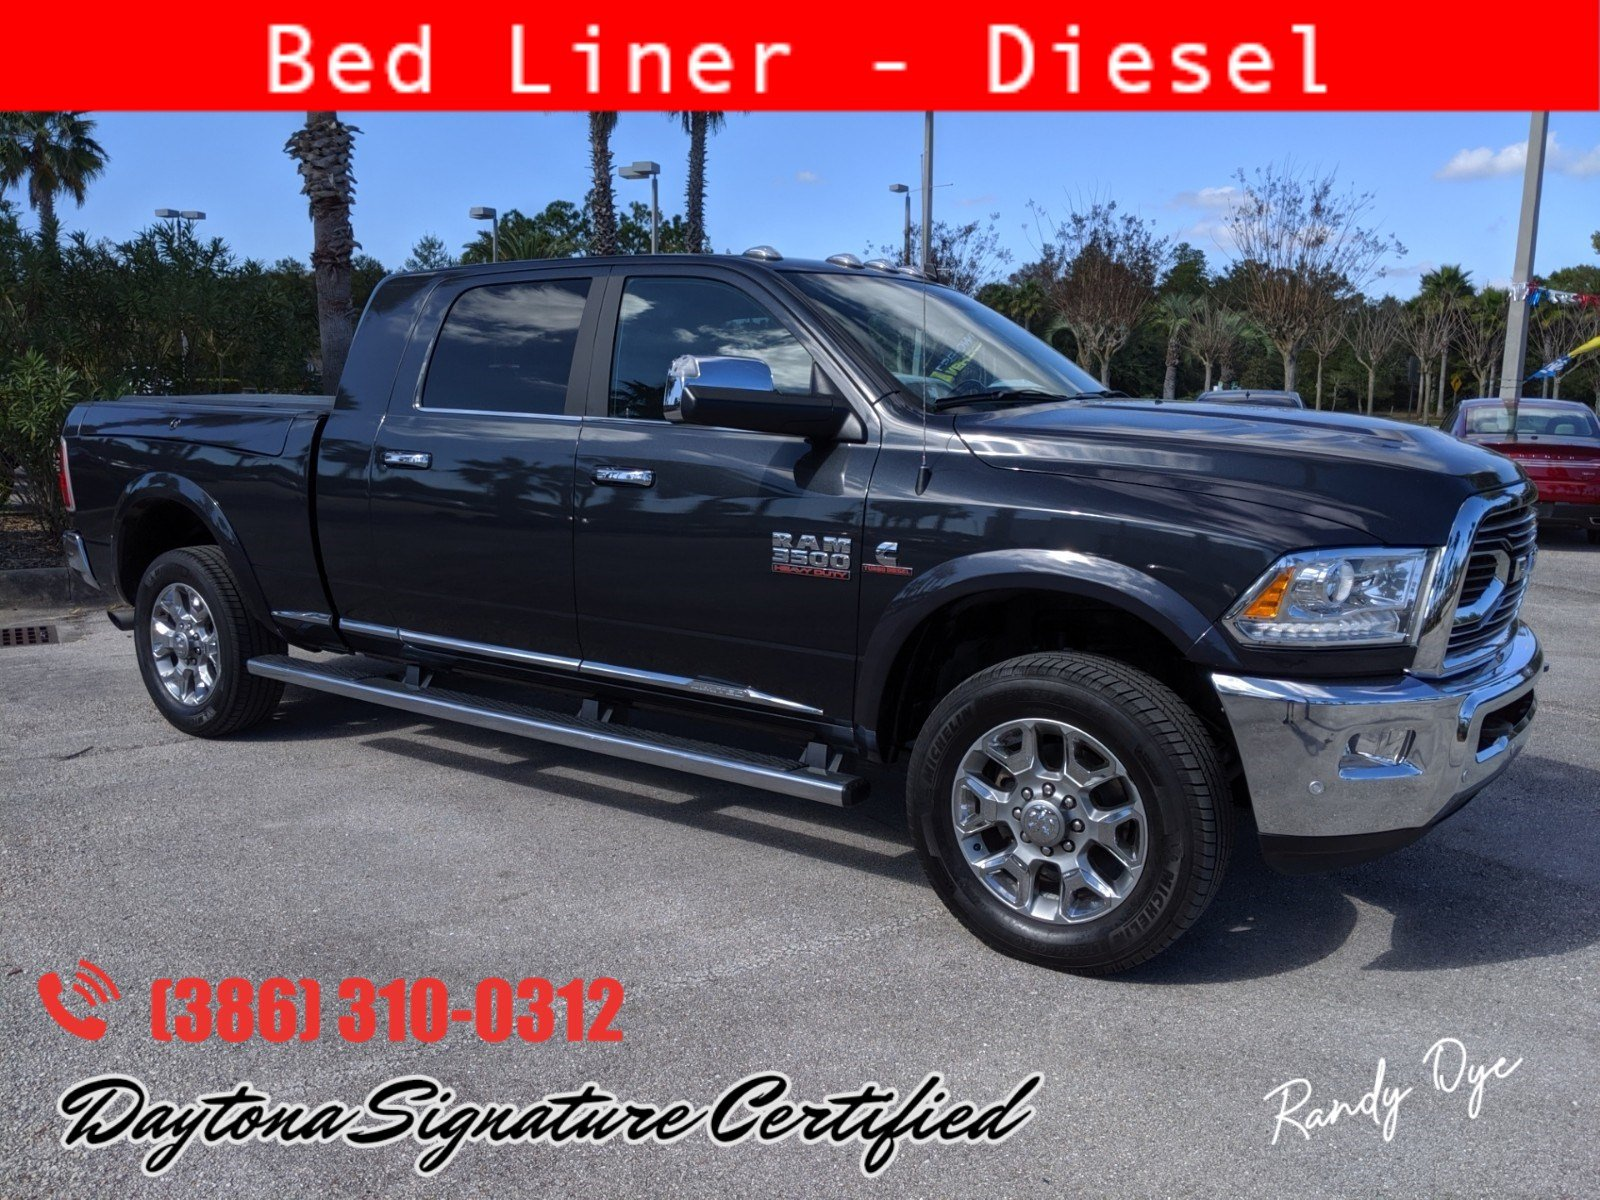 Certified Pre-Owned 2018 Ram 3500 Limited